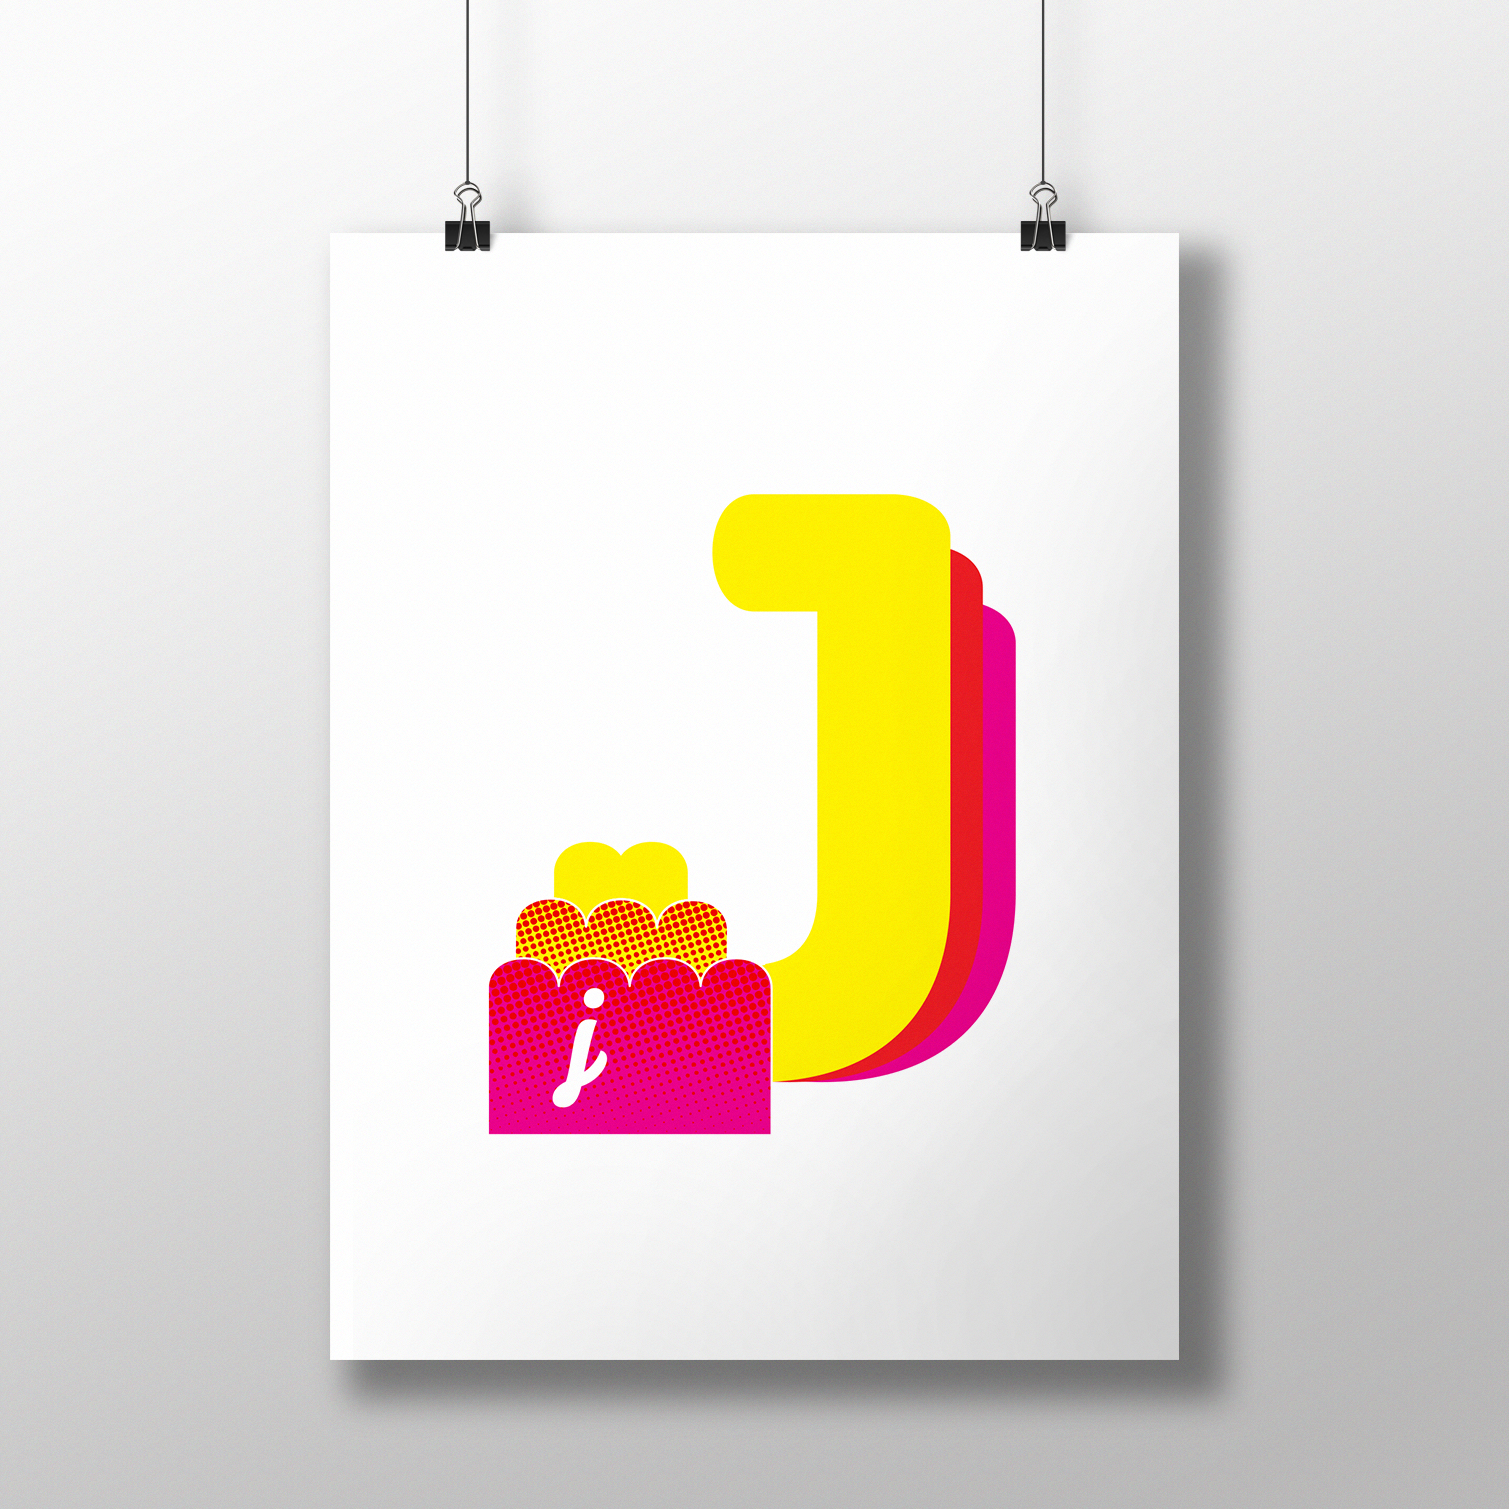 alphablot alphabet illustration jelly letter j